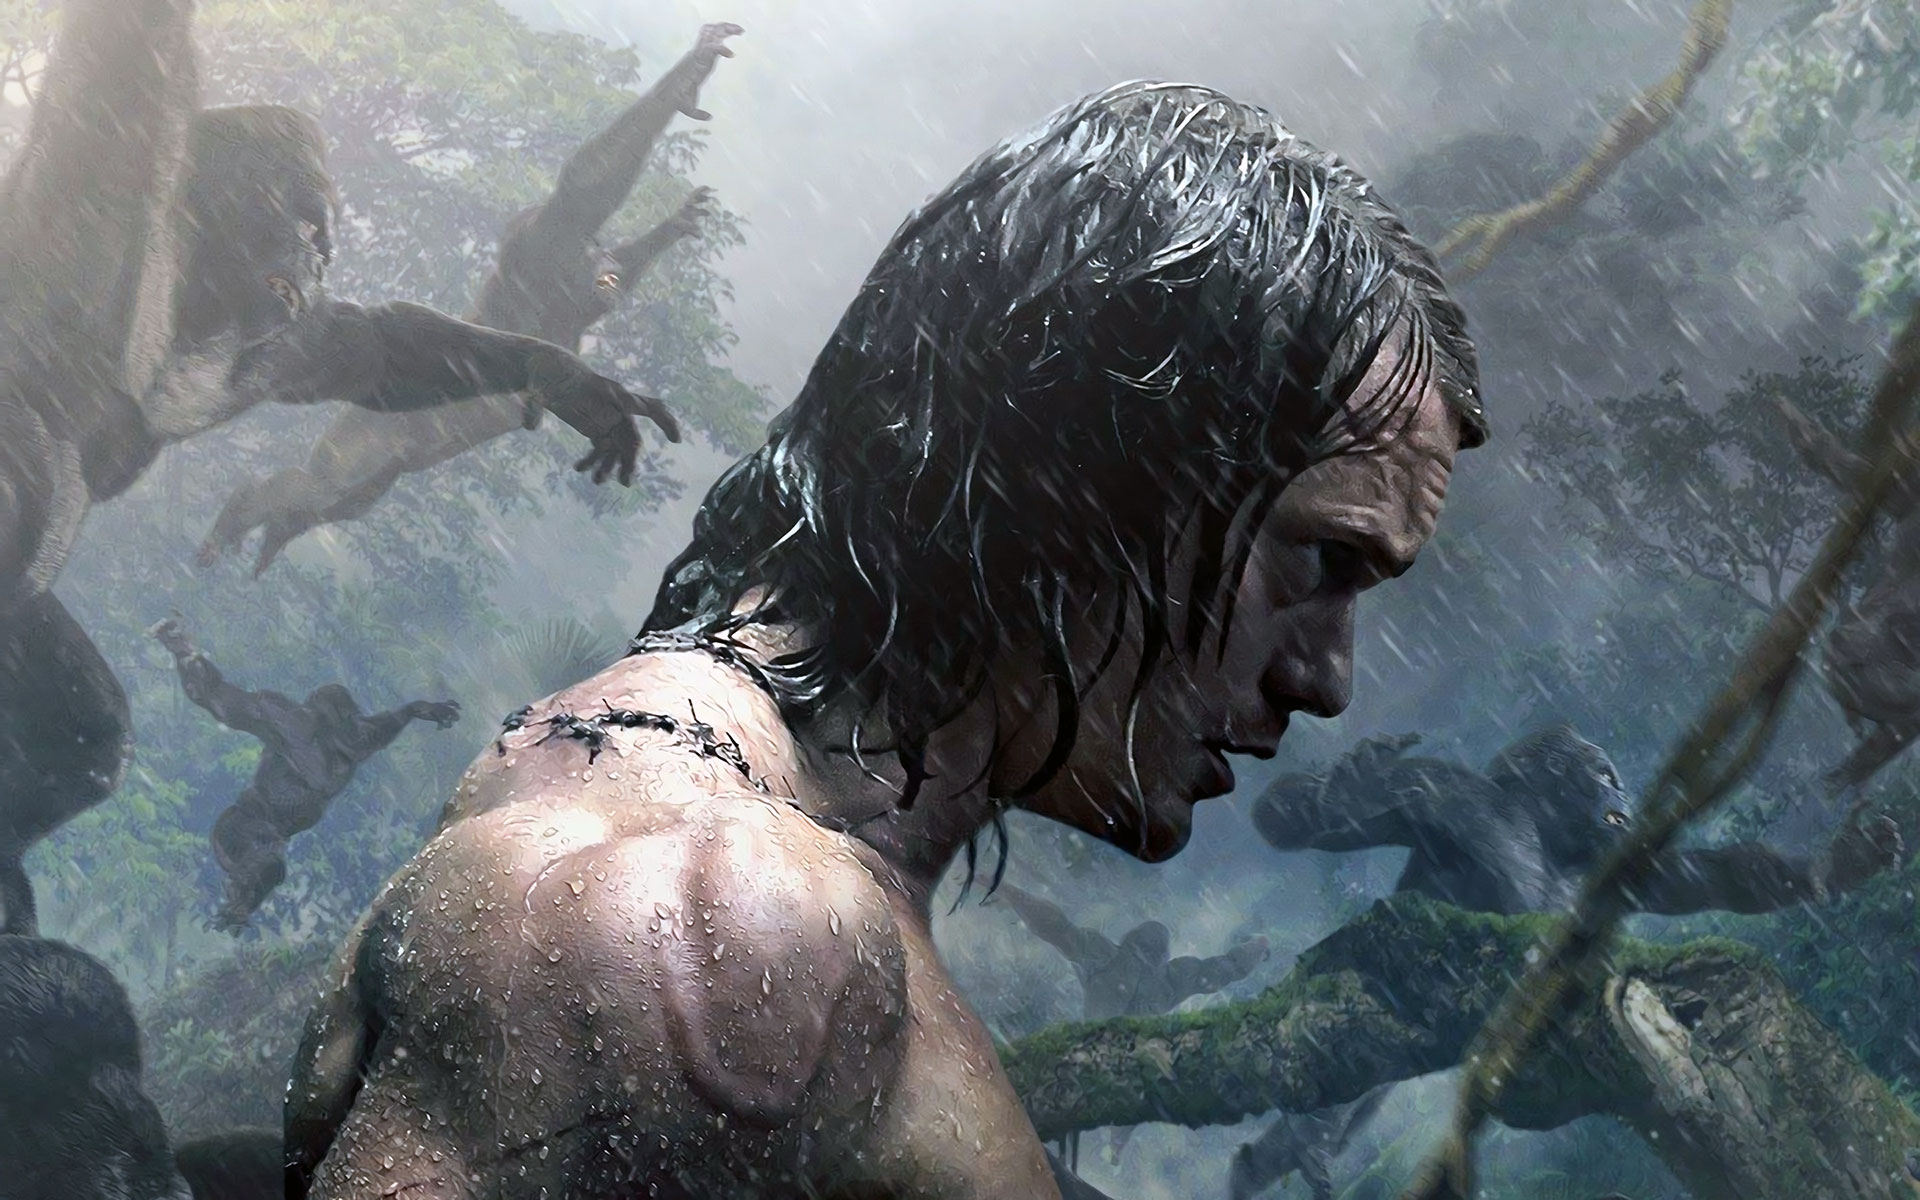 Tarzan 2016 hd movies 4k wallpapers images backgrounds - Tarzan wallpaper ...